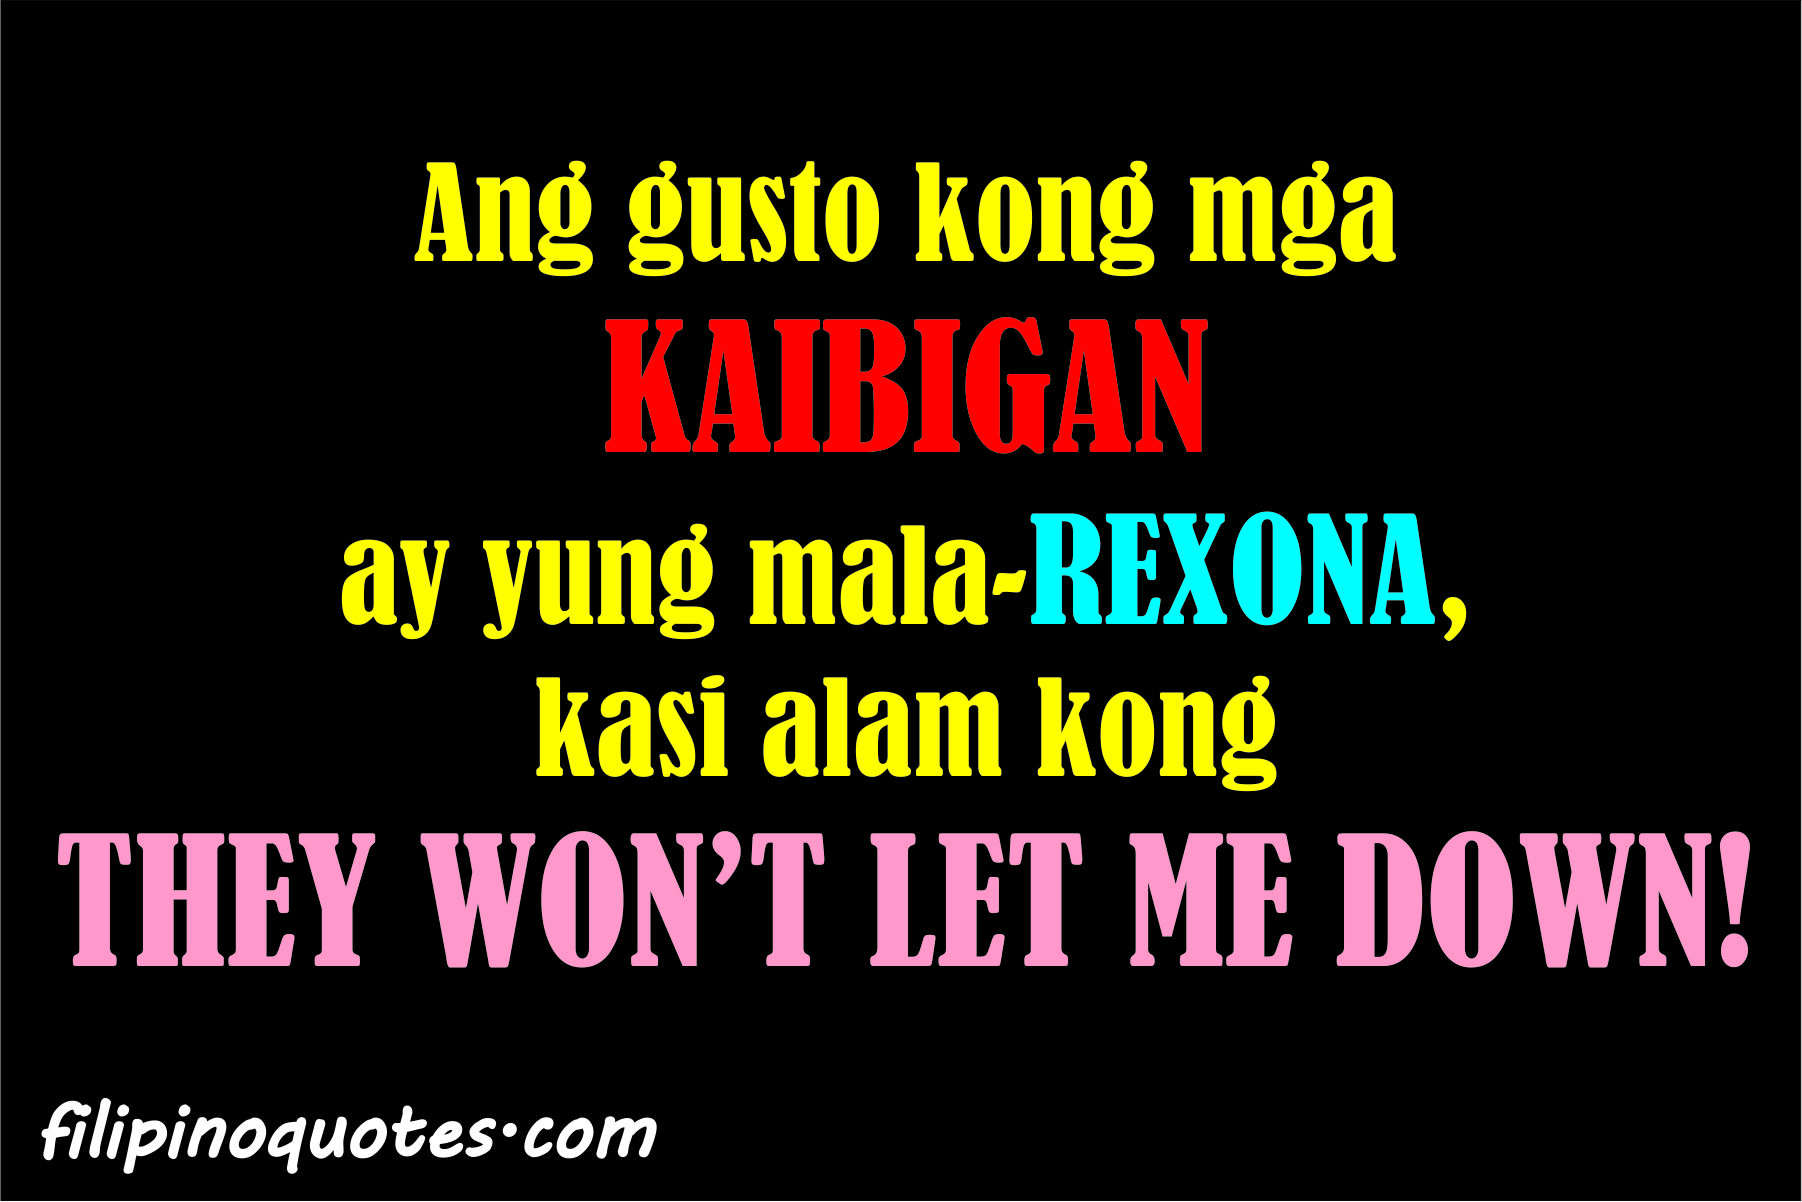 Funny Weird Quotes Nice Funny Quotes Quotes About Friendship Tagalog Inspirational Quotes Download